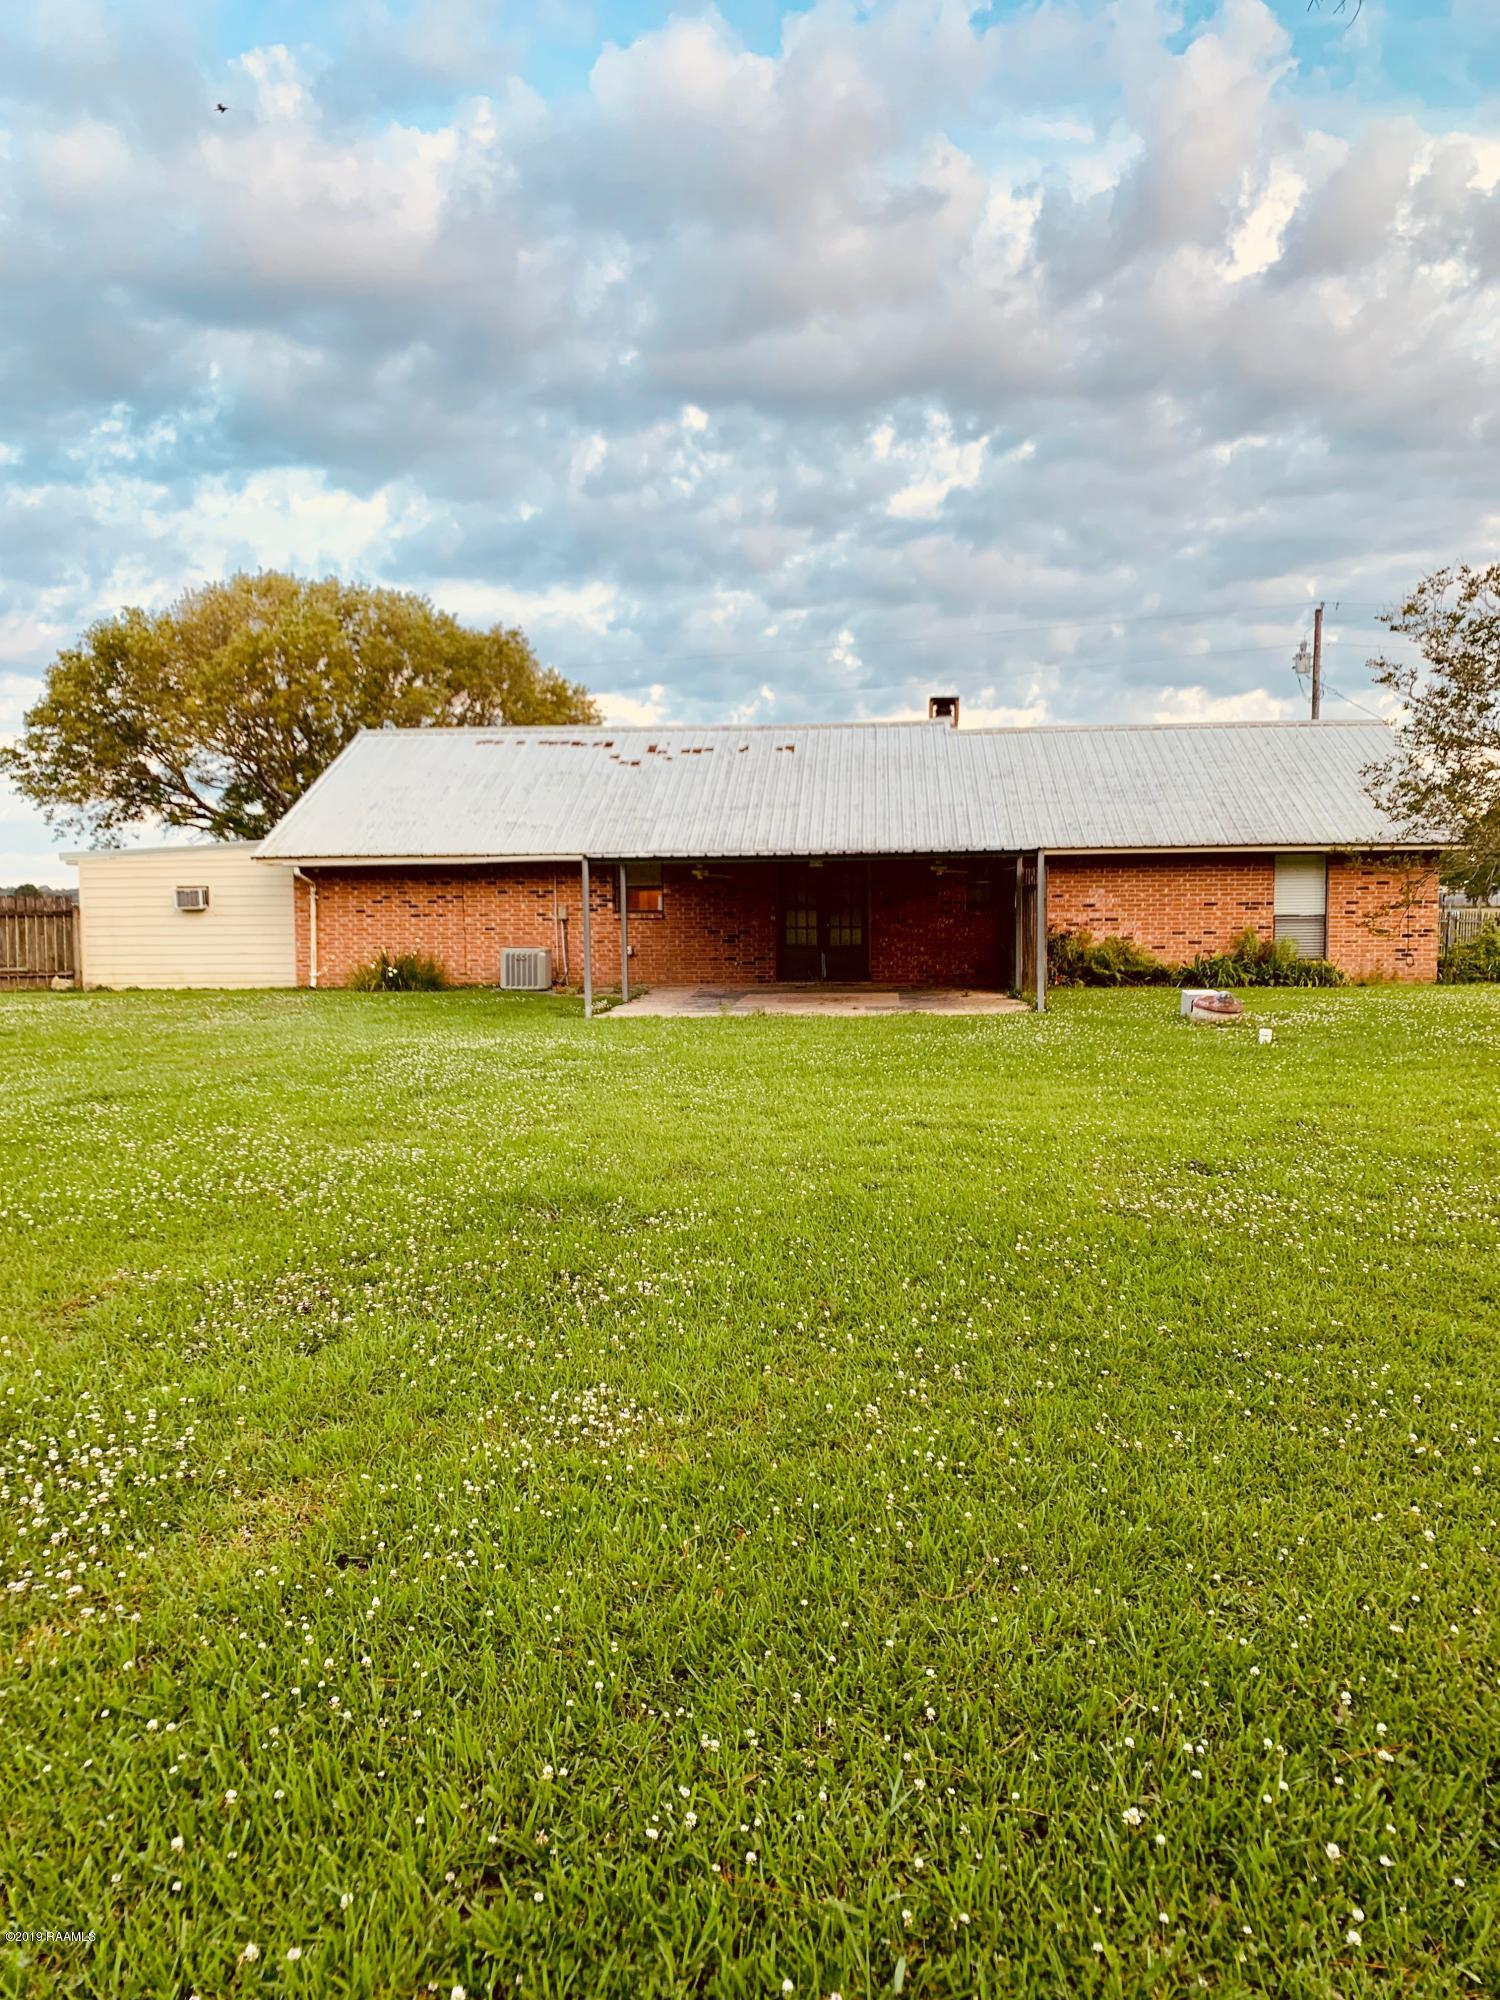 145 John Paul Drive, Opelousas, LA 70570 Photo #27